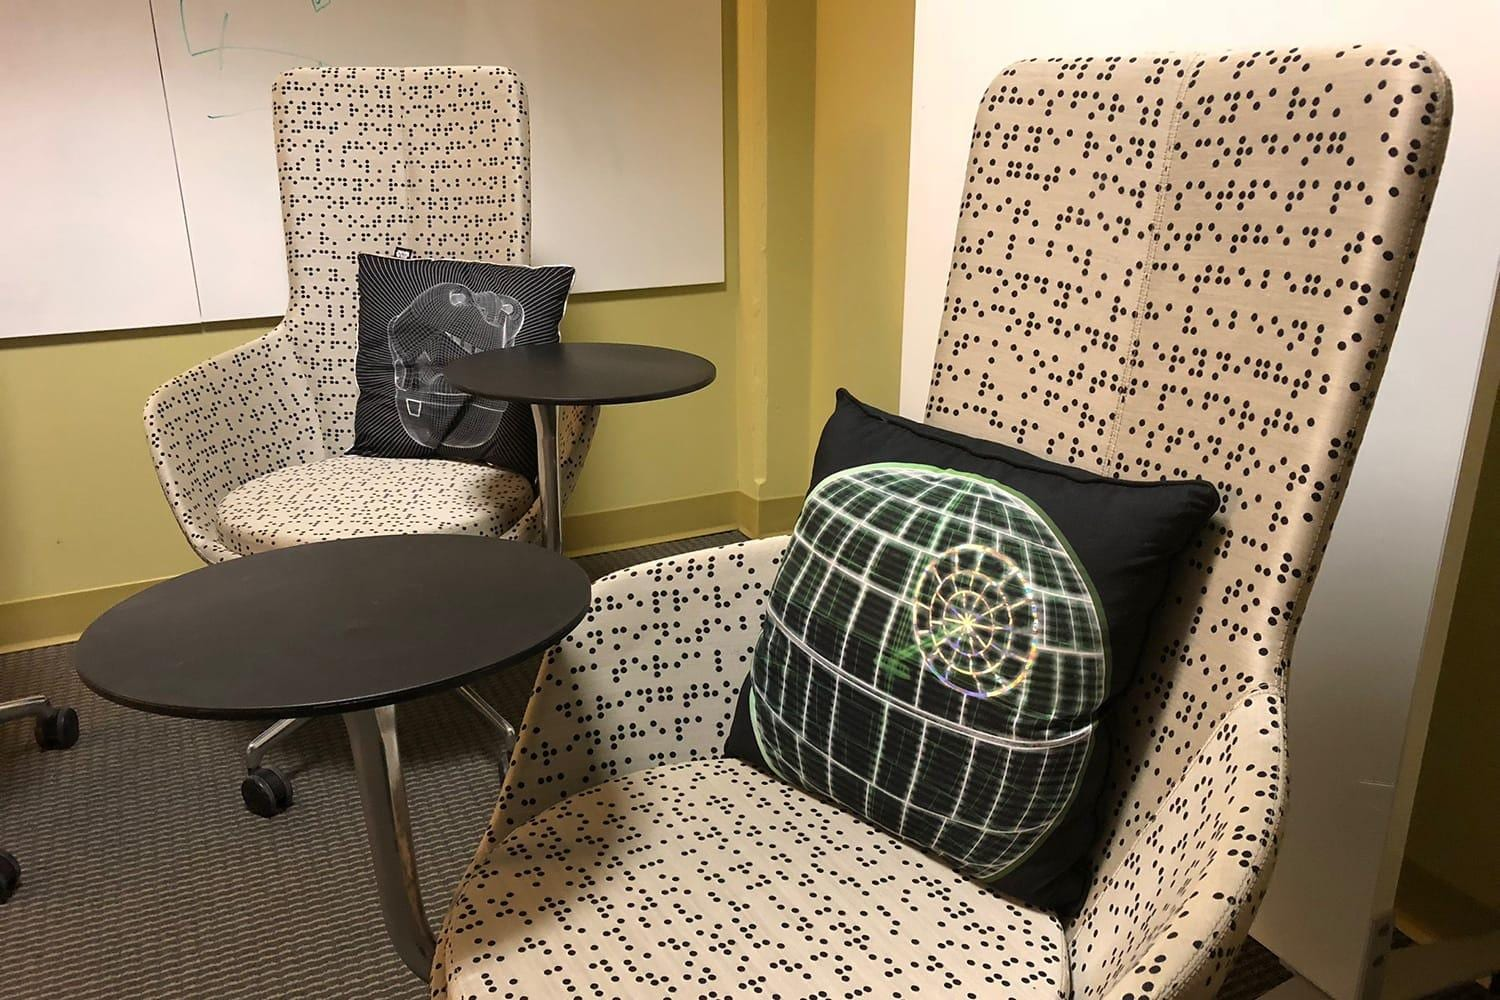 Decorative chairs in the design center